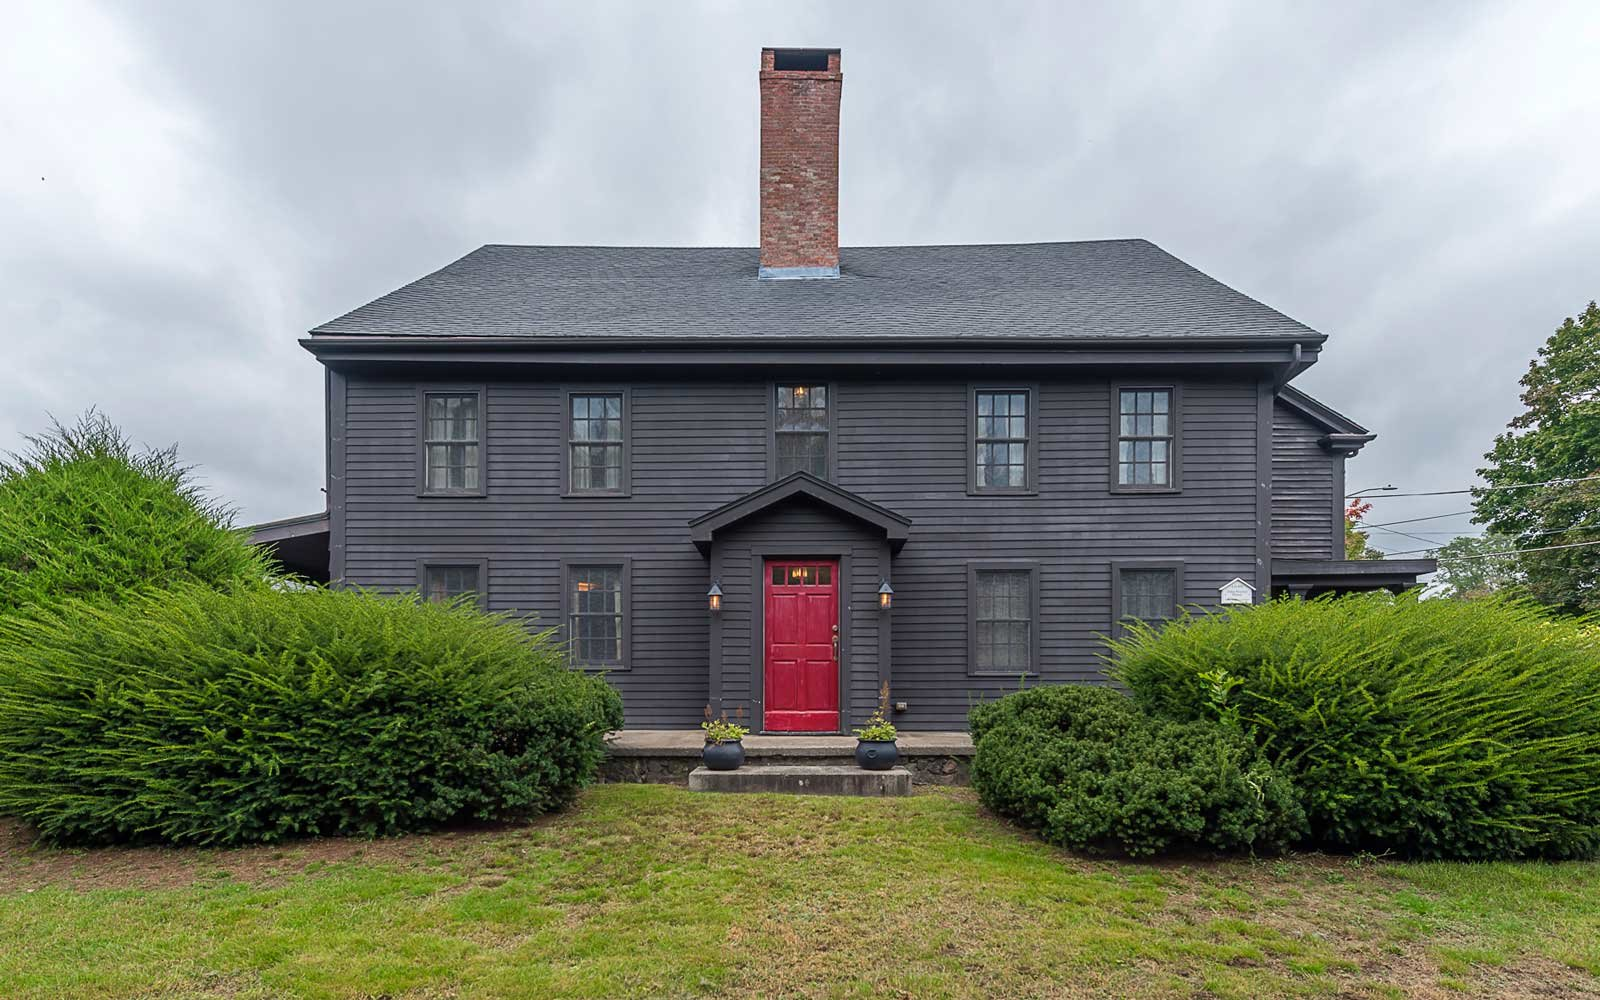 Salem, Mass. John Proctor home for Sale